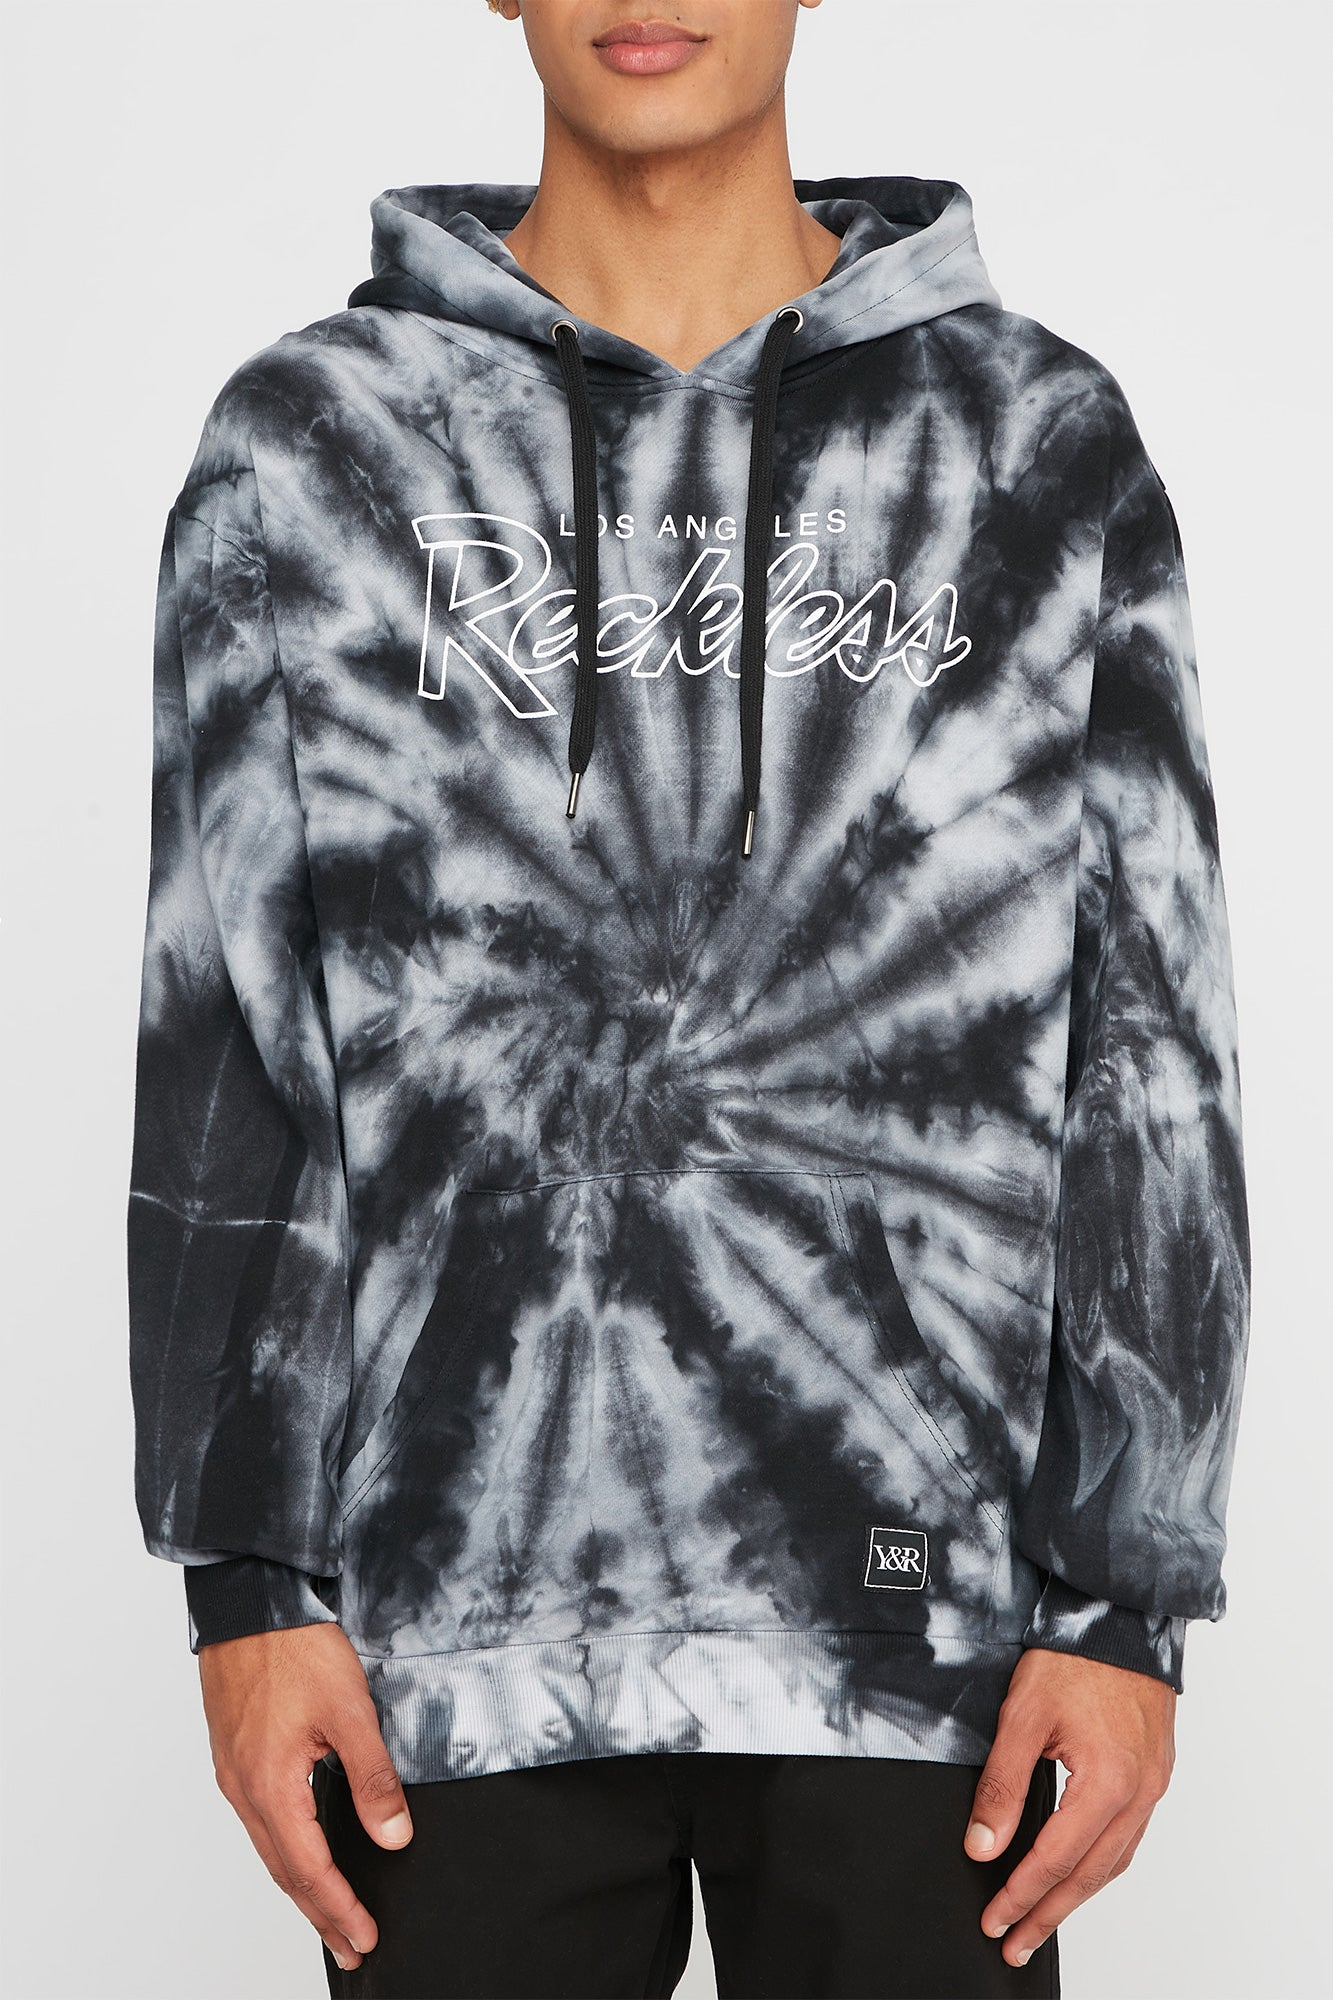 e2bbe8c6 Young & Reckless Mens Swirl Tie Dye Hoodie   West49